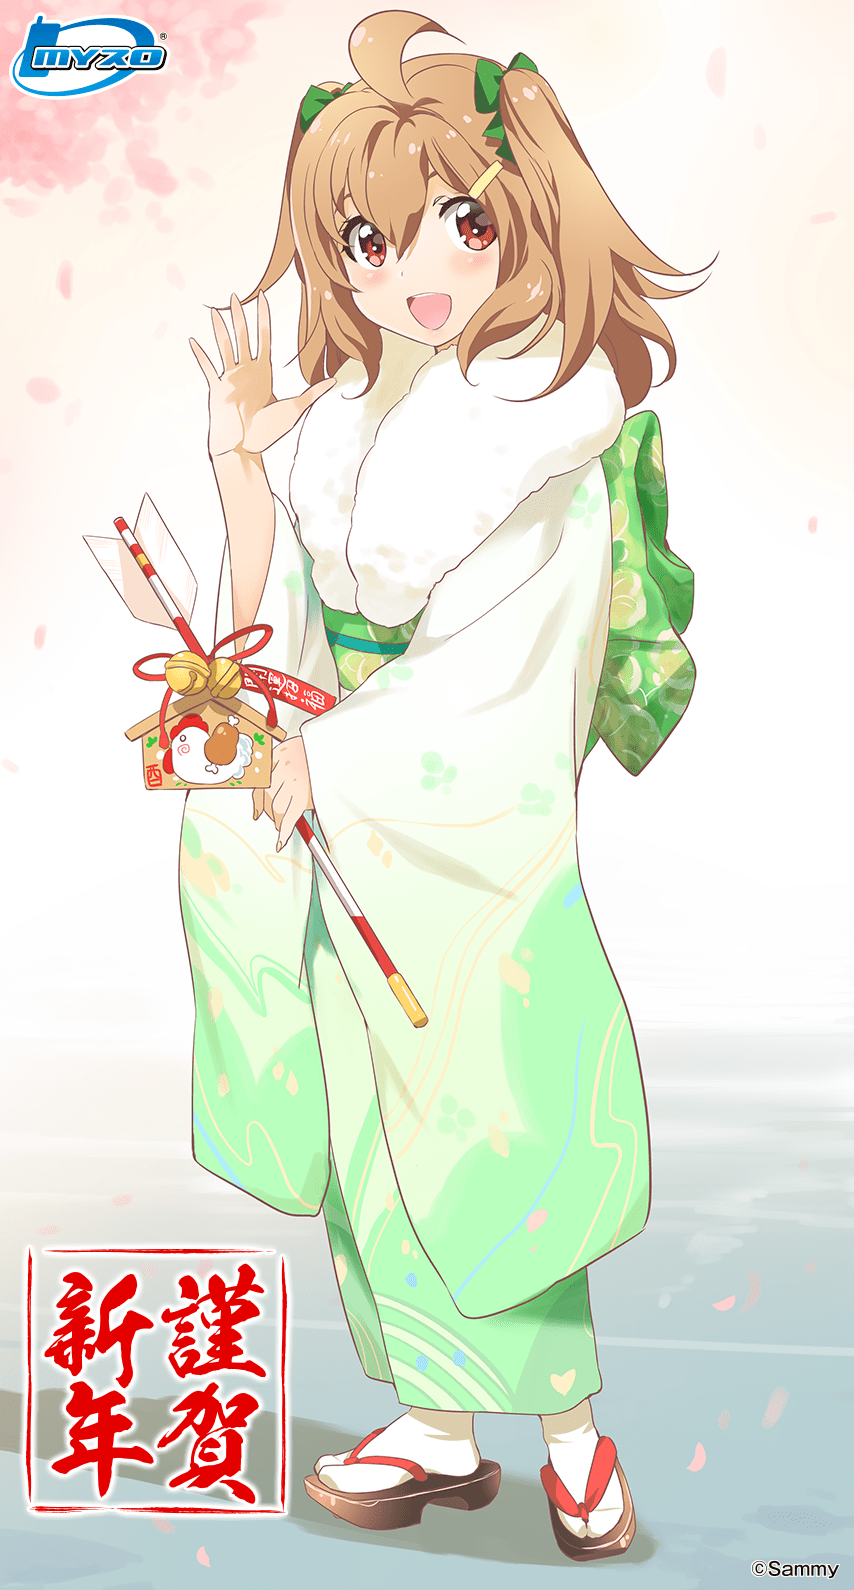 1girl ahoge bell bow brown_eyes brown_hair cherry_blossoms chinese_zodiac full_body fur-trimmed_kimono fur_trim green_bow hair_bow hair_ornament hairclip highres inoue_sora japanese_clothes jingle_bell kimono long_hair looking_at_viewer midori-chan_(myslot) myslot new_year open_mouth sandals smile solo two_side_up waving white_legwear year_of_the_rooster